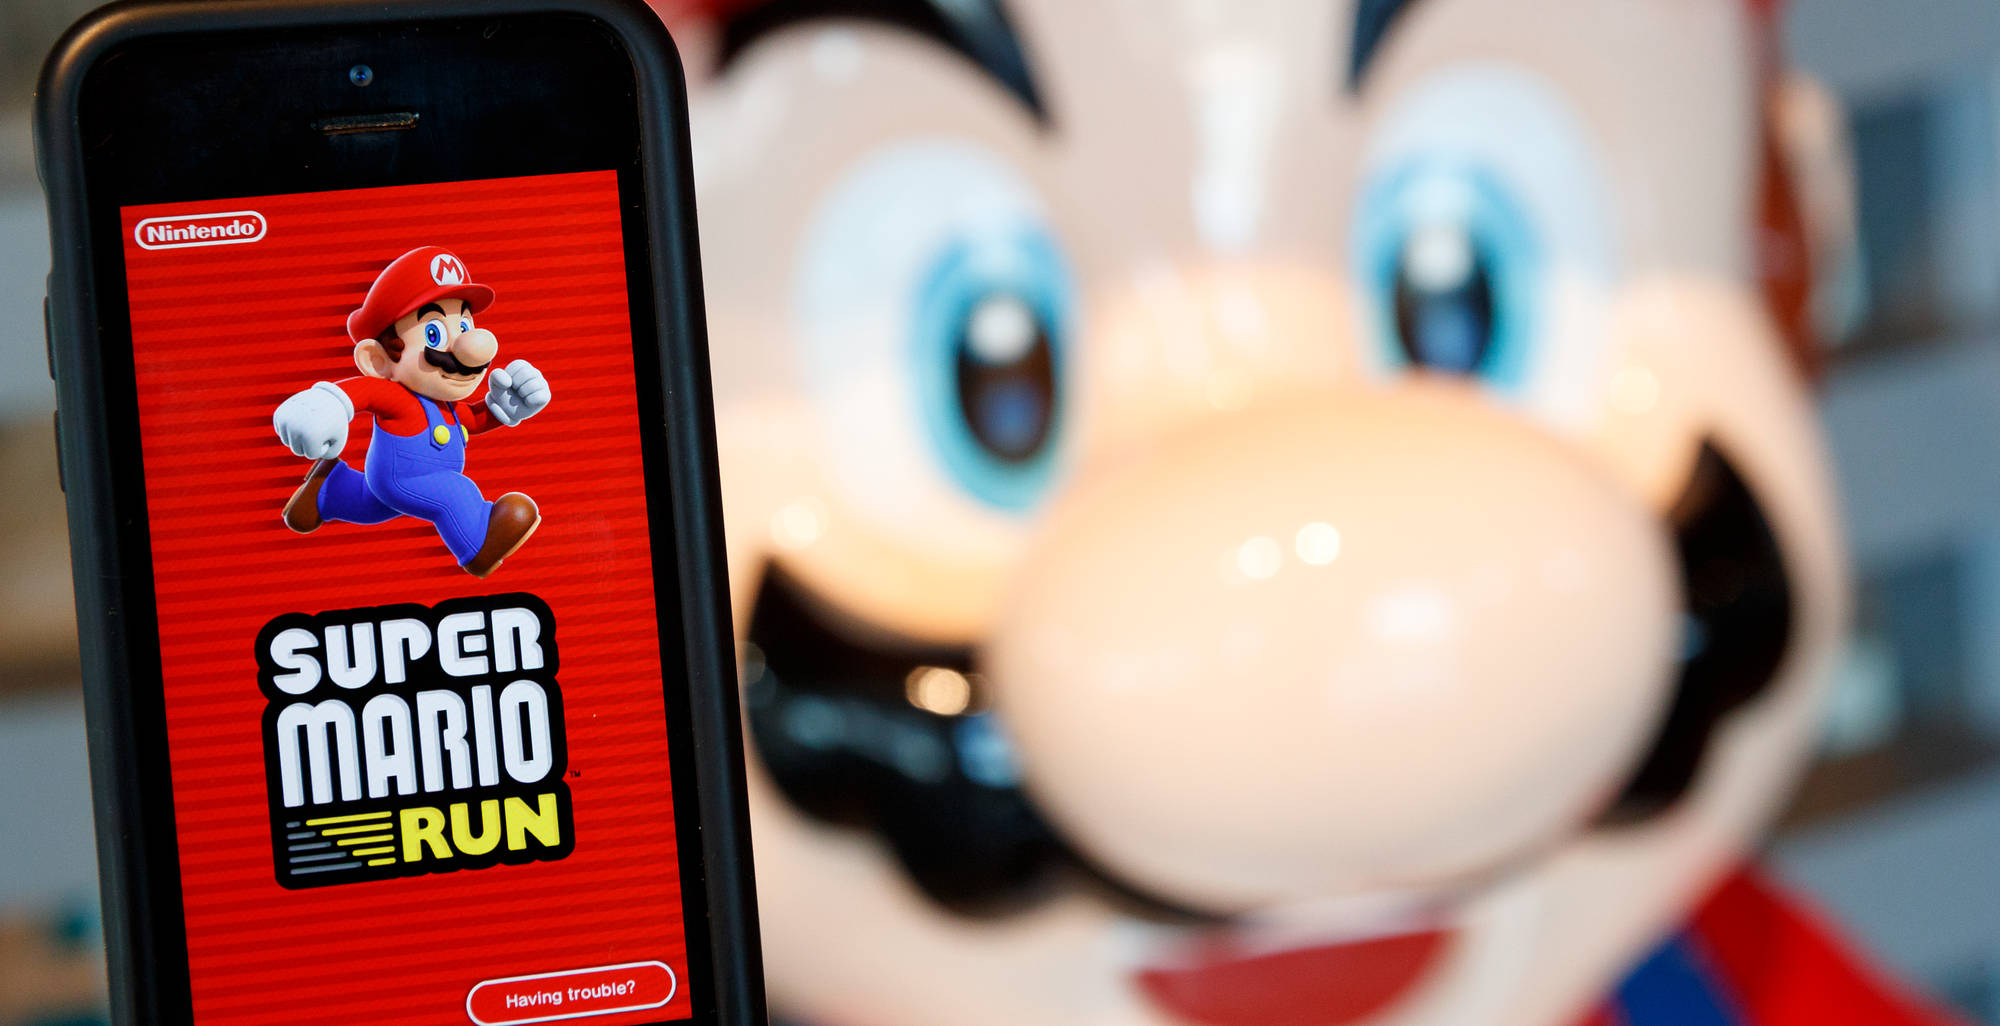 Nintendo Shares Fall After 'Super Mario Run' Disappoints